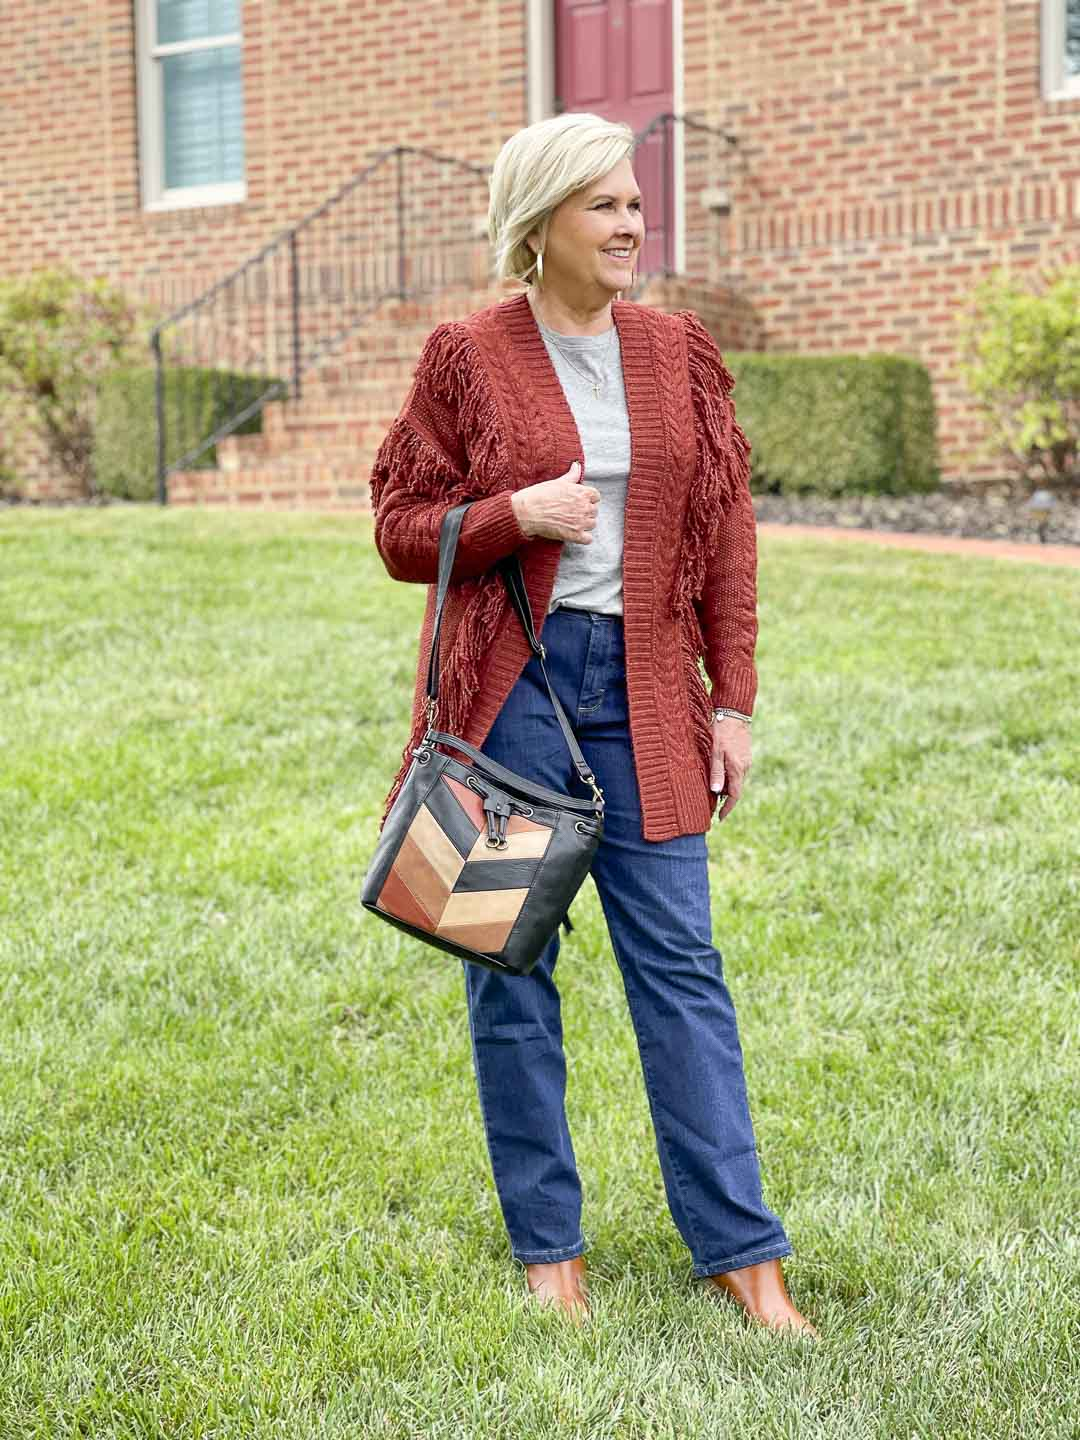 Over 40 Fashion Blogger, Tania Stephens, is showing her recent Walmart haul including this oversized fringed cardigan, bootcut jeans, patchwork bucket bag, and faux leather ankle boots